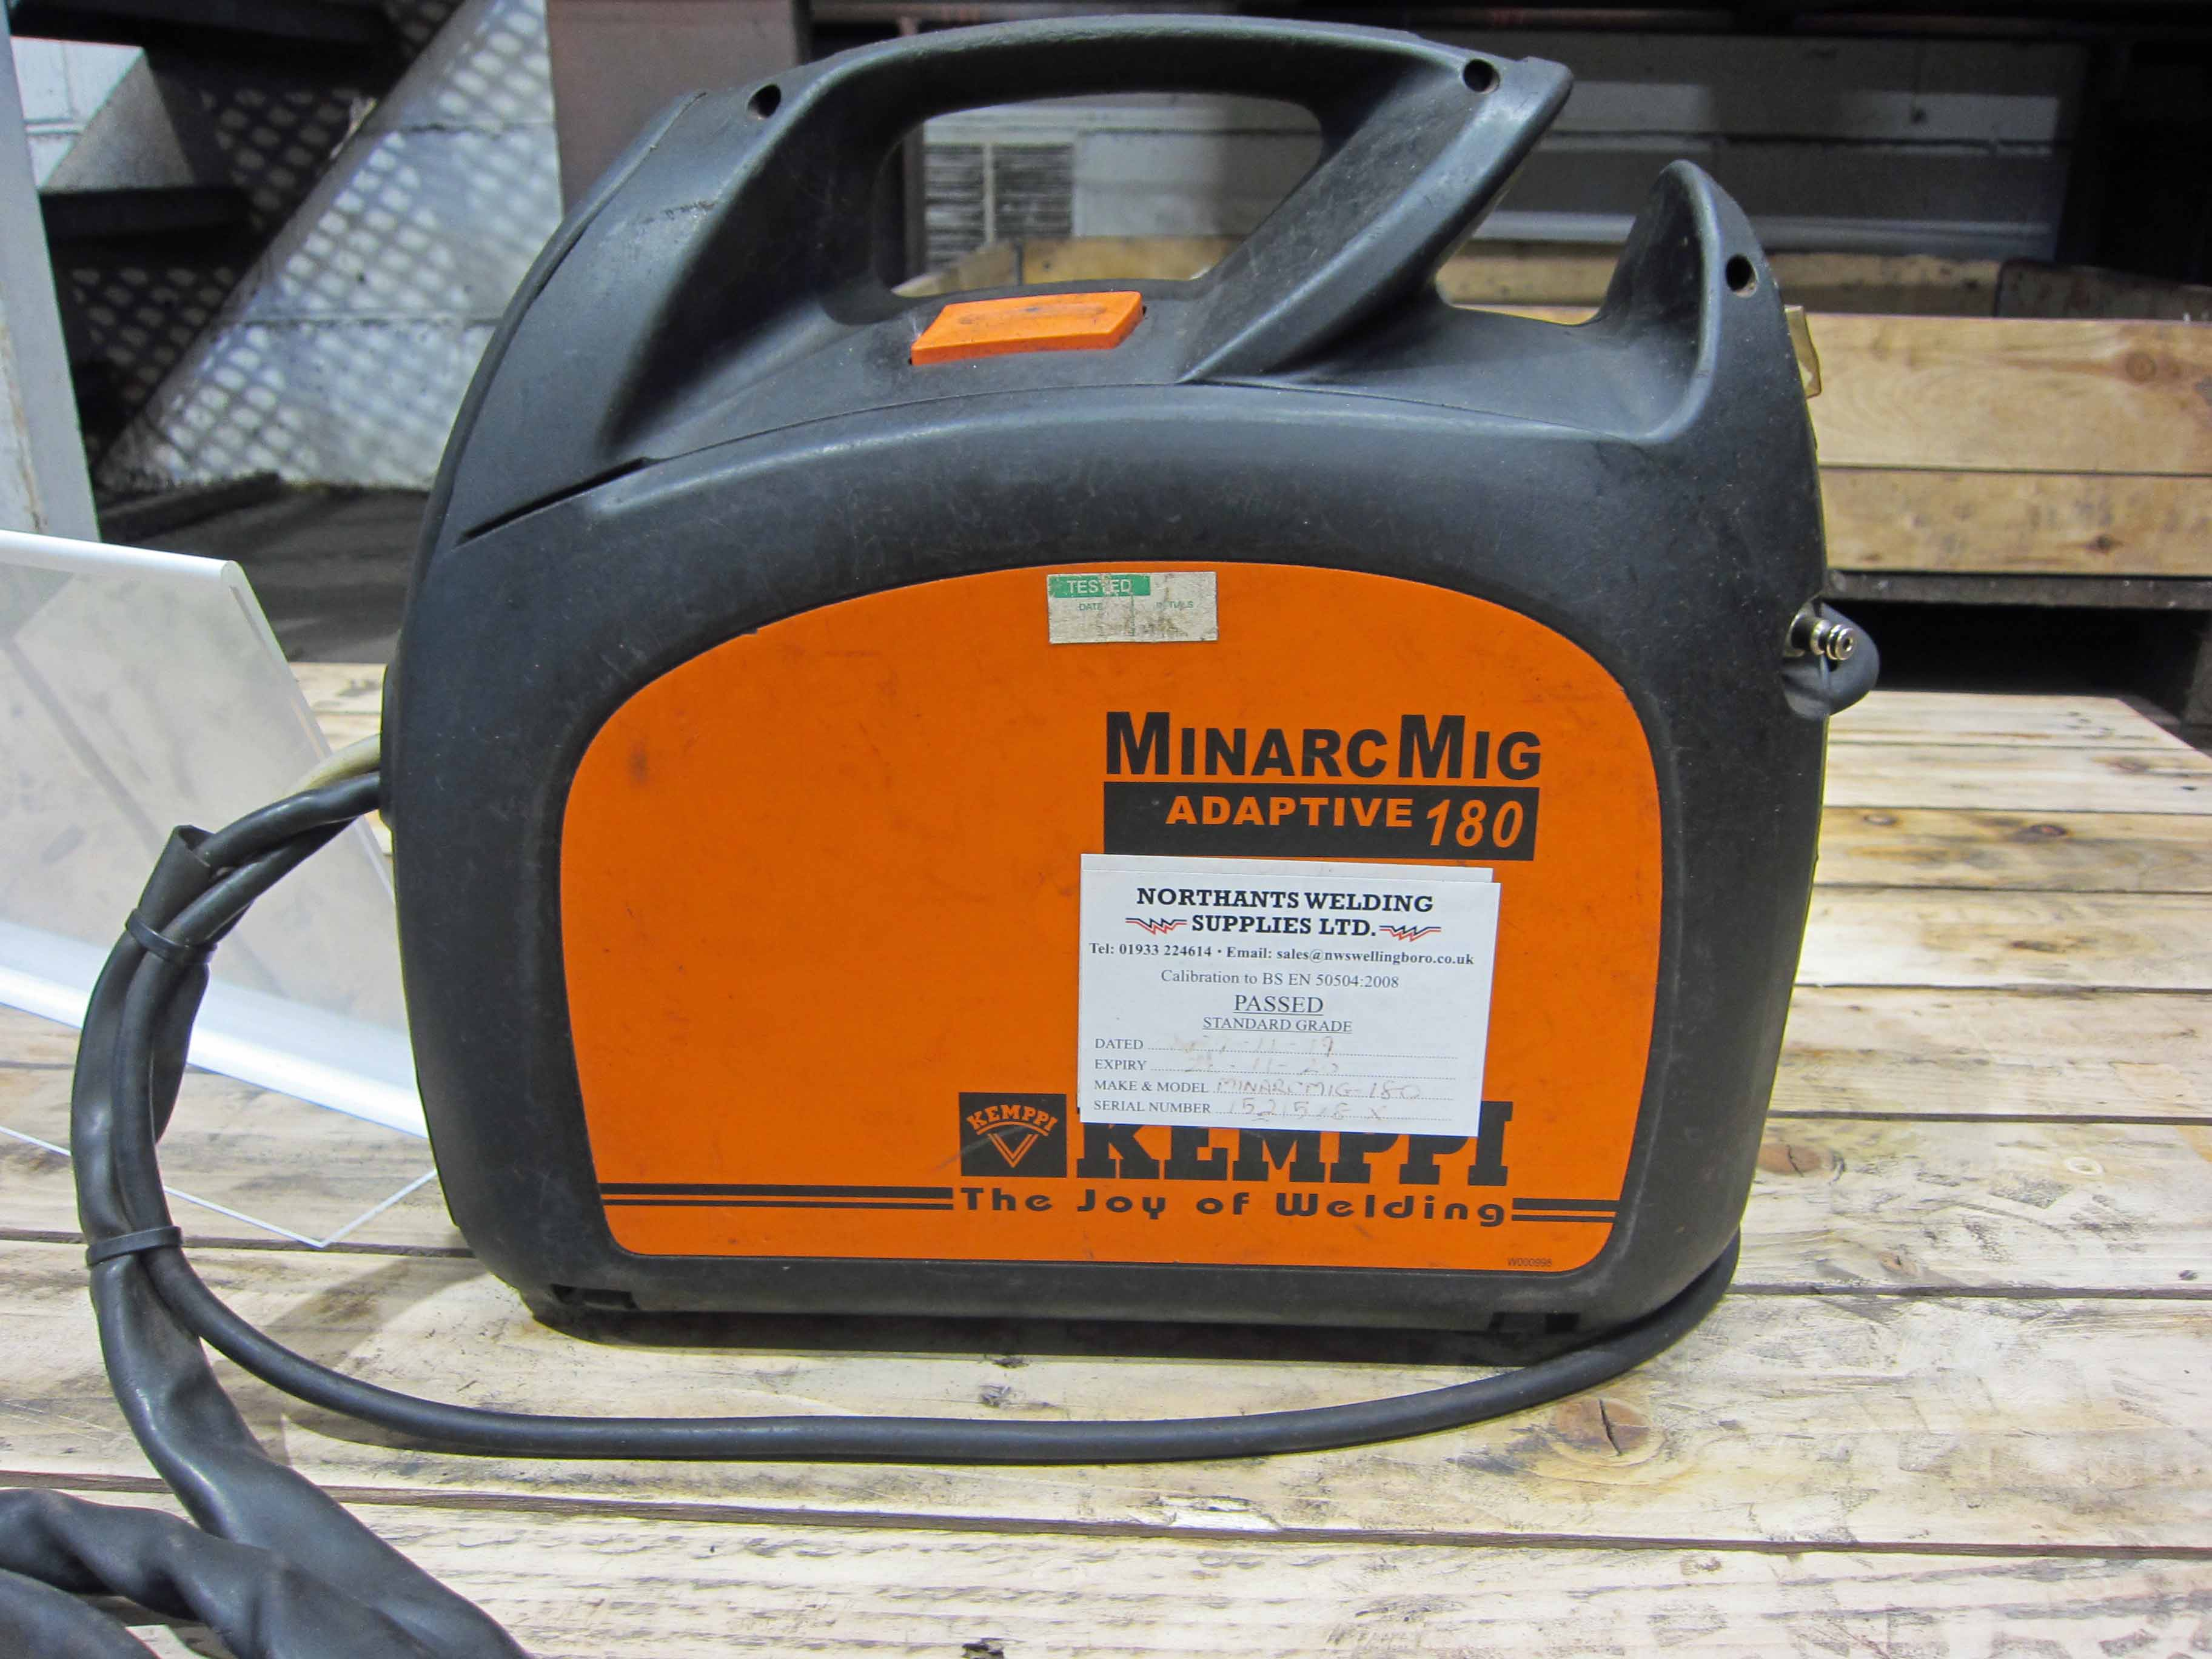 A KEMPPI MinArc Mig Model Adaptive 180 240V Portable Mig Welder complete with Gun and Earth Lead ( - Image 3 of 6